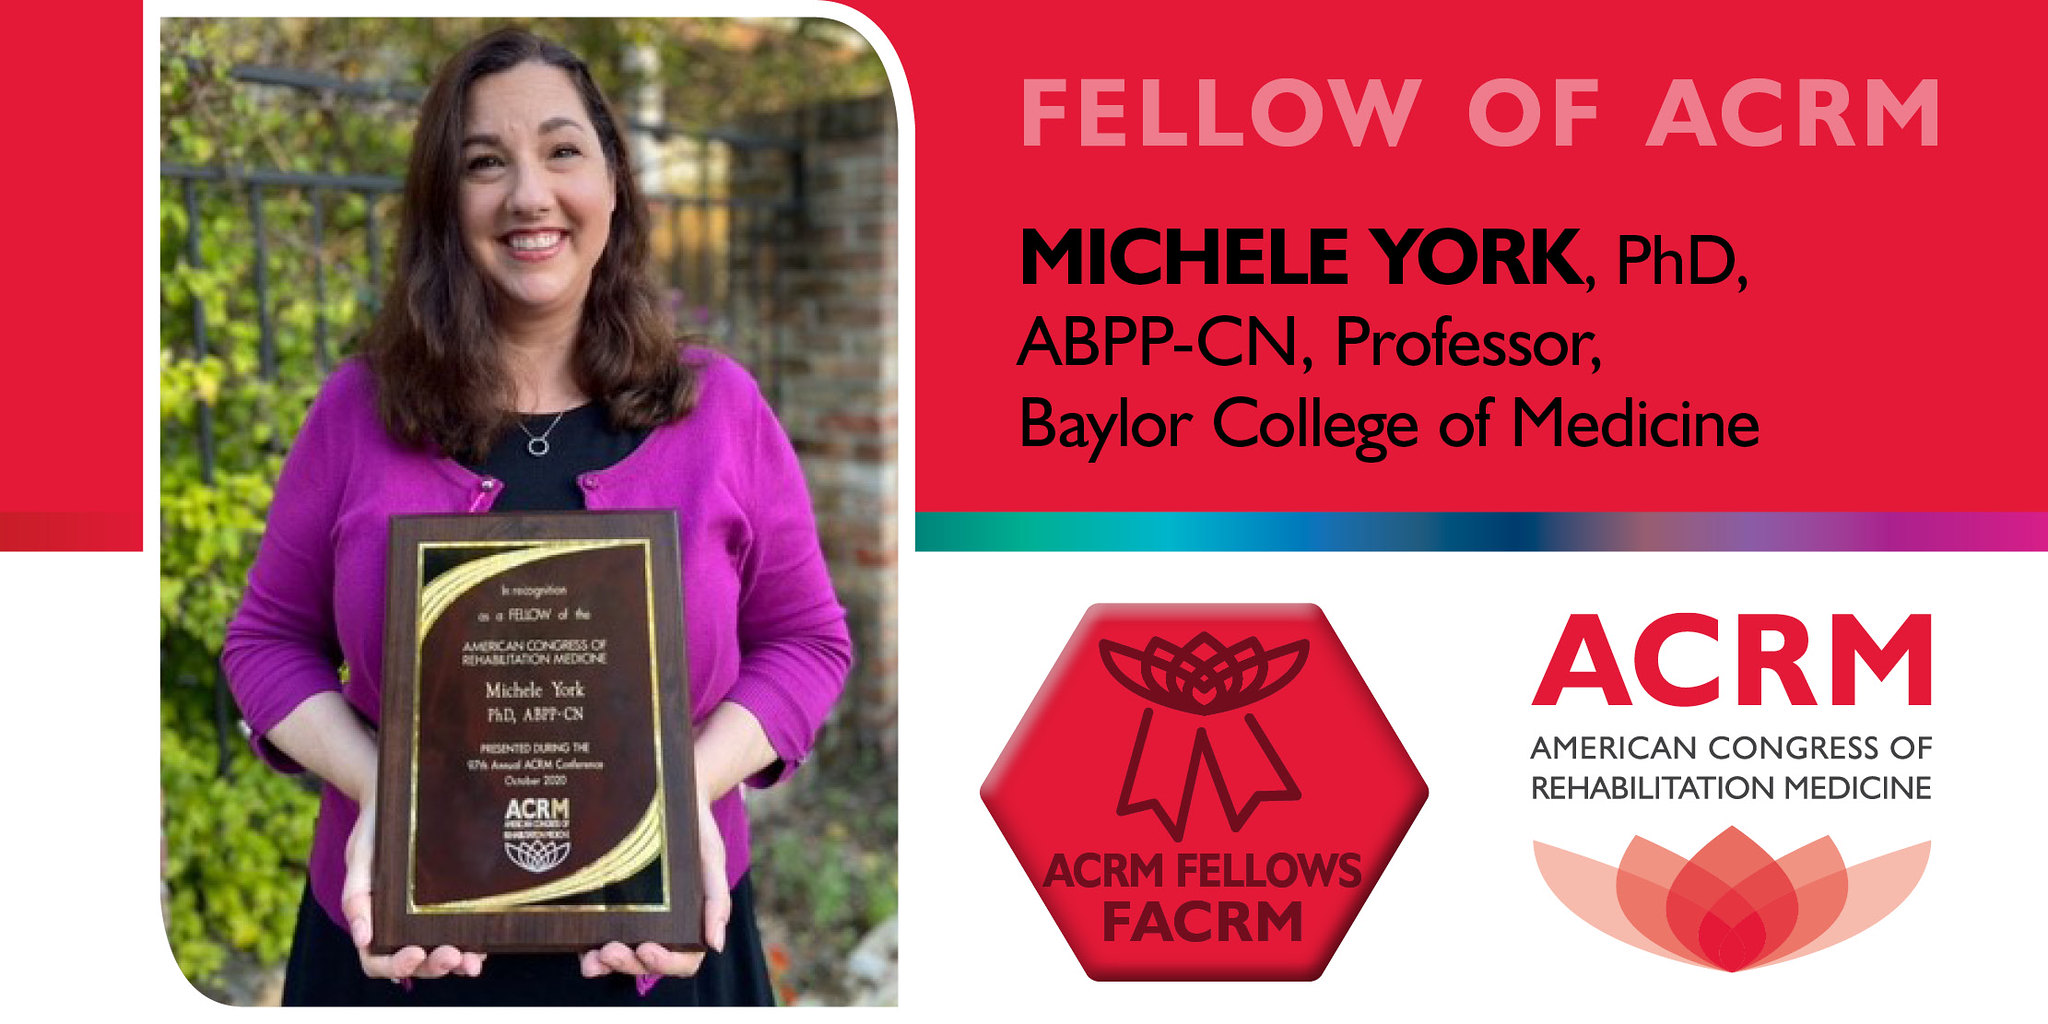 Michele York is a 2020 Fellow of ACRM